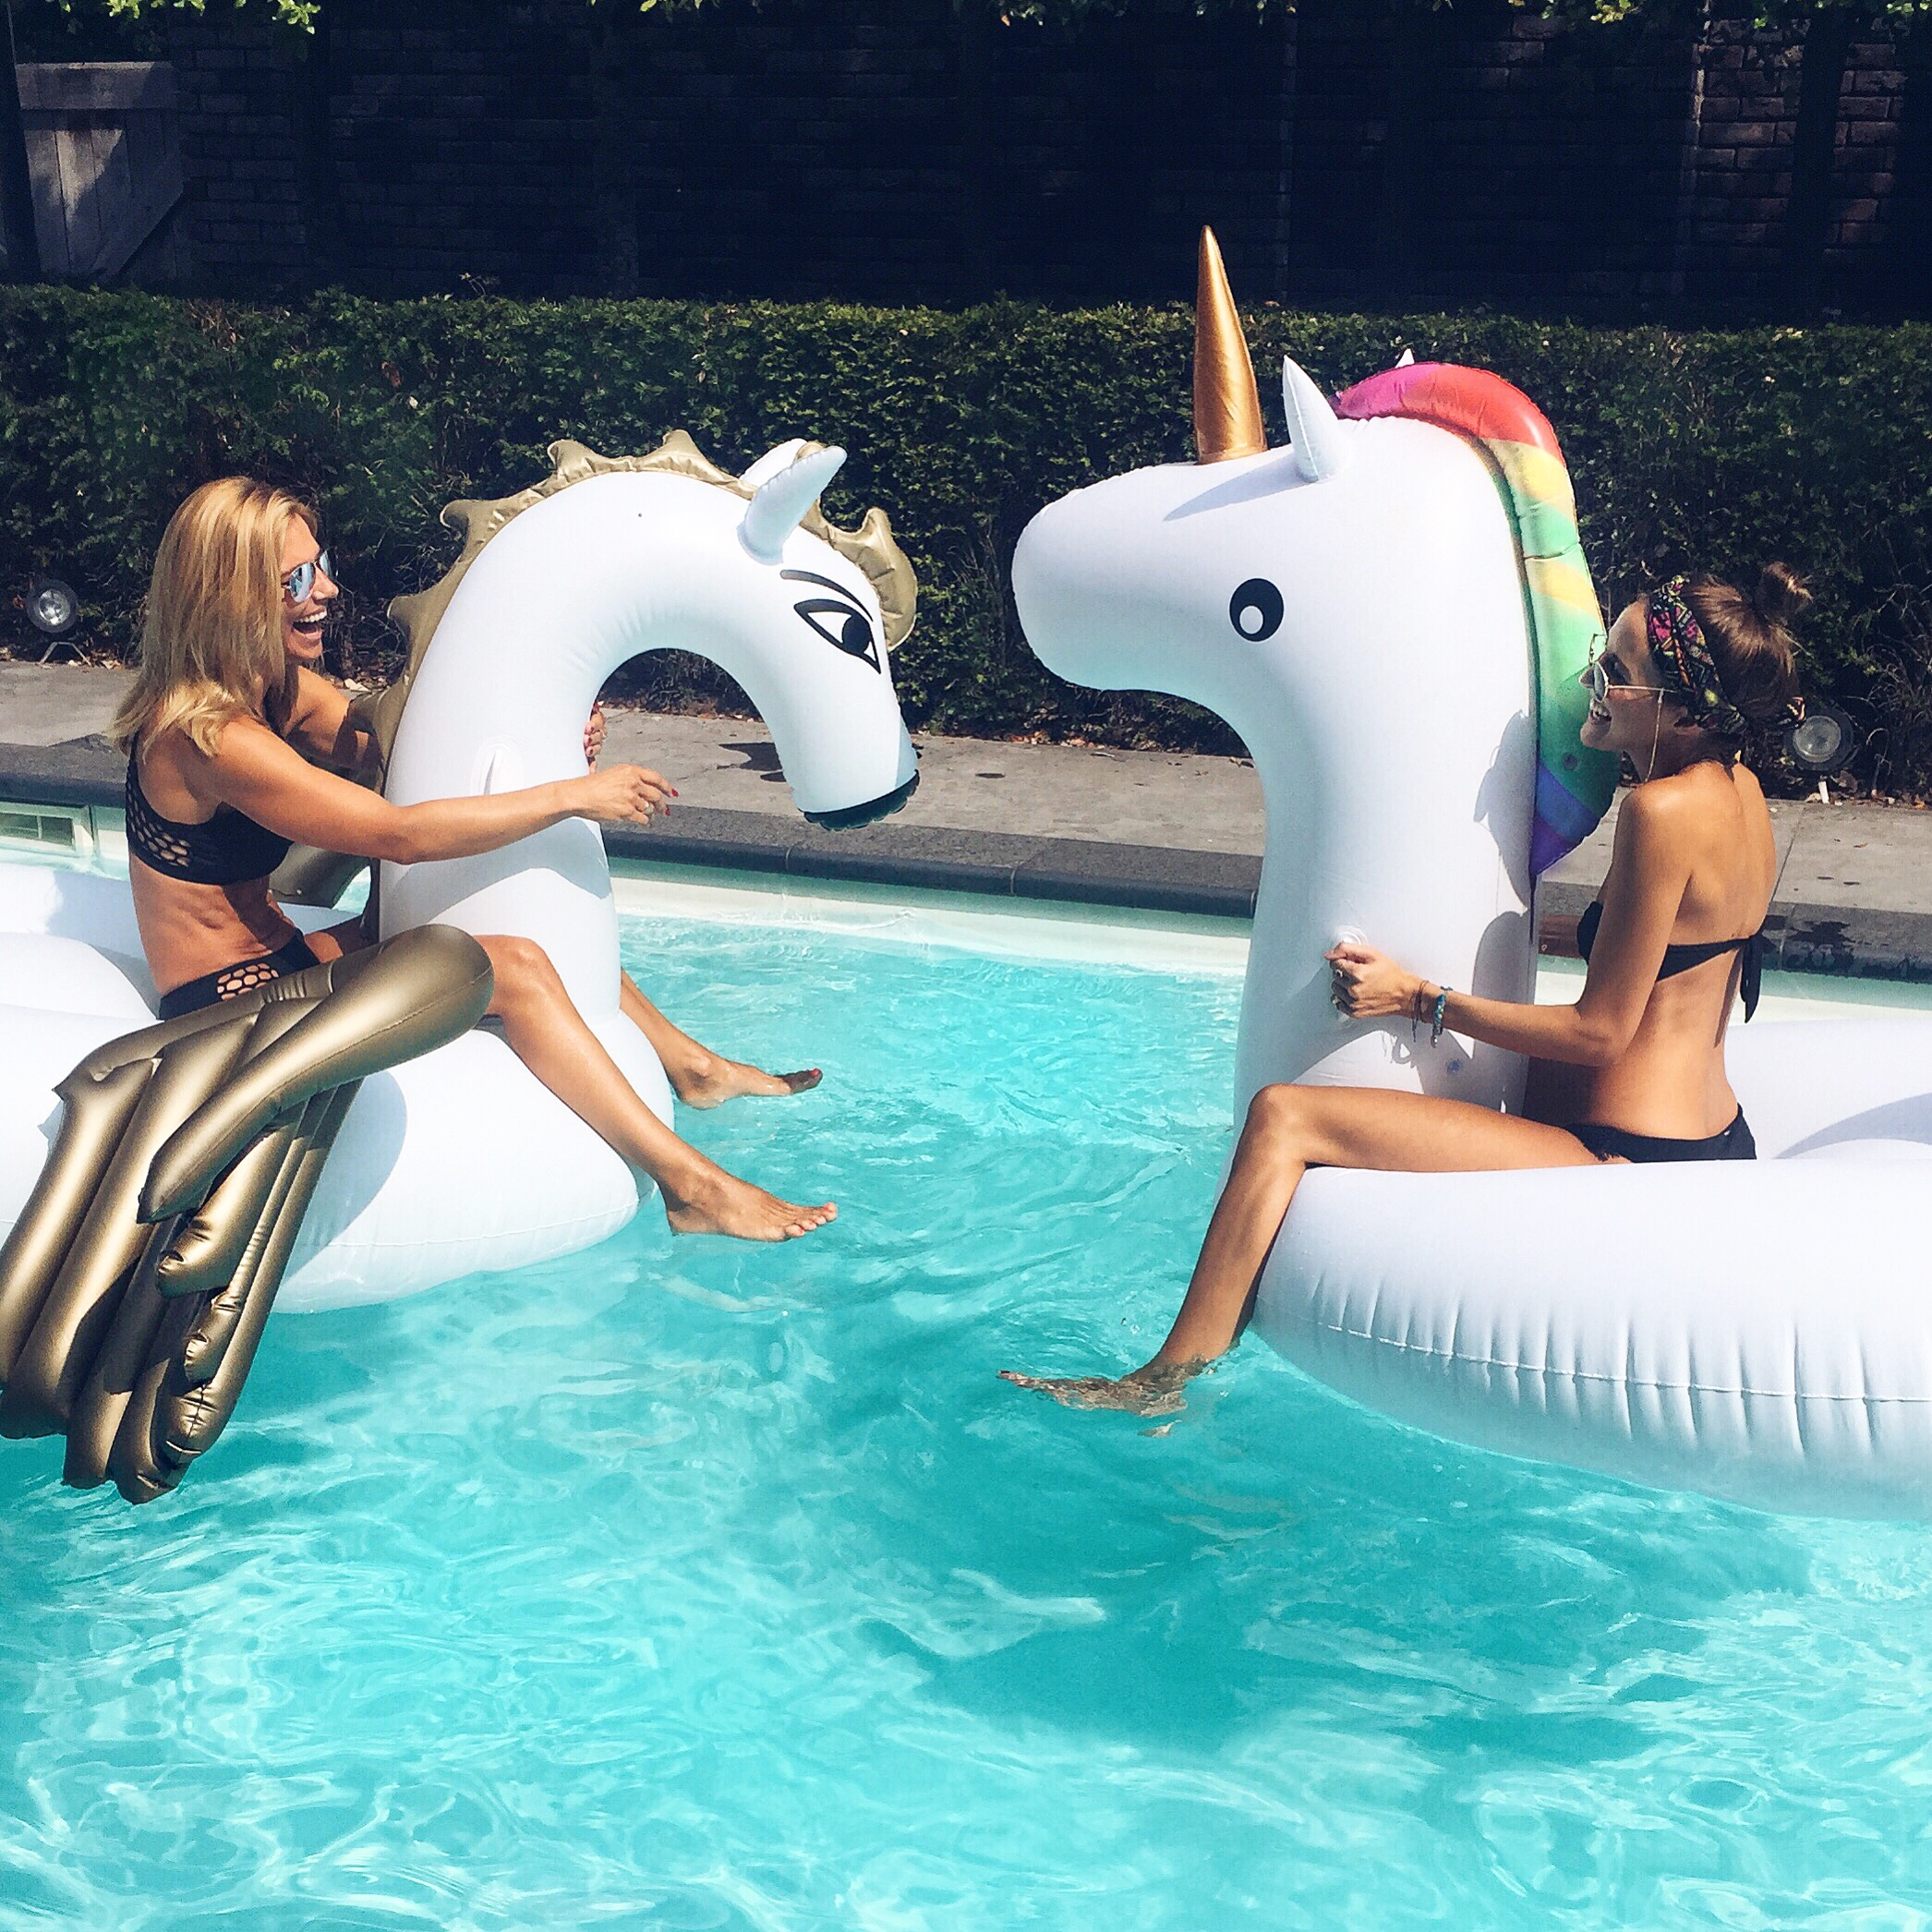 linda_tsetis_worlds_affair_unicorn_pangasus_swimmingpool